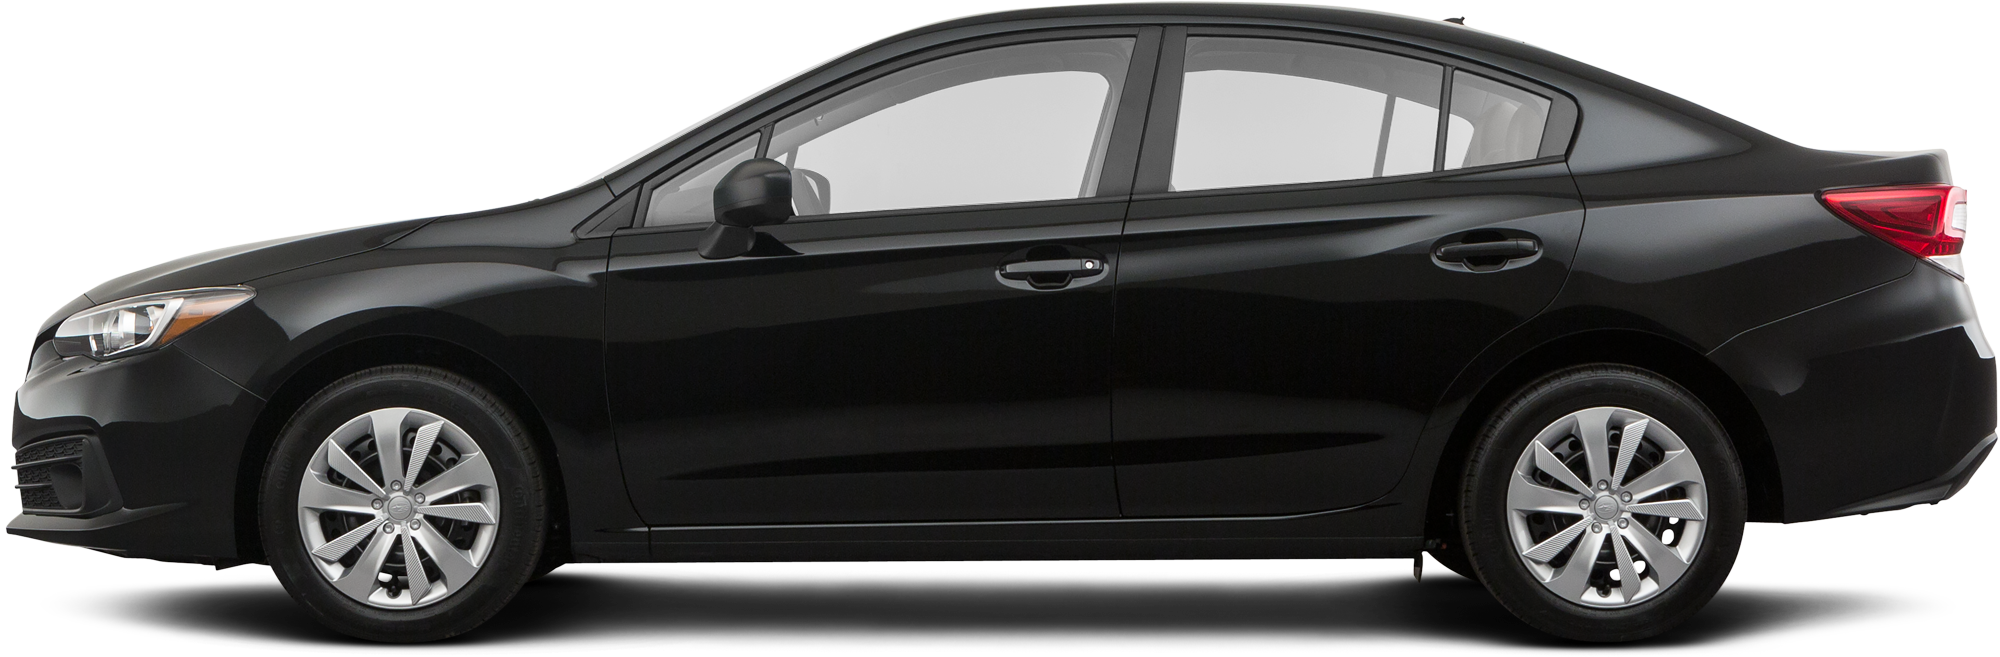 2021 Subaru Impreza Sedan Base Trim Level